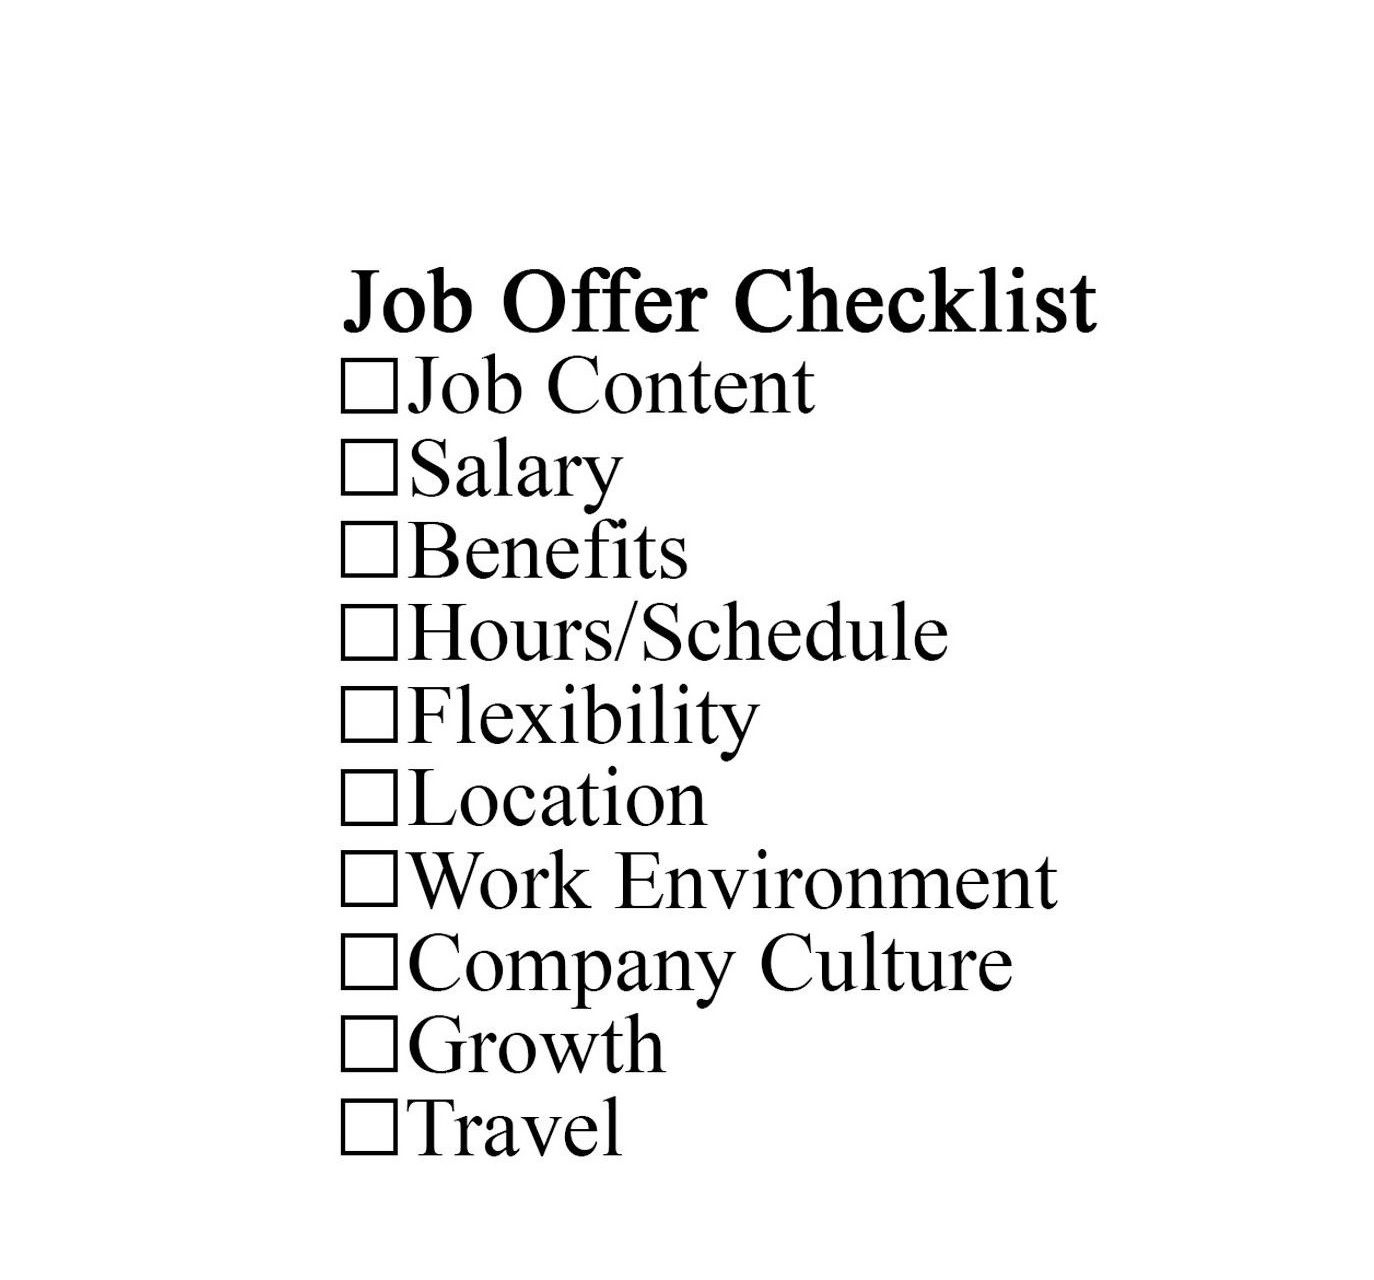 Checklist to Evaluate a Job Offer